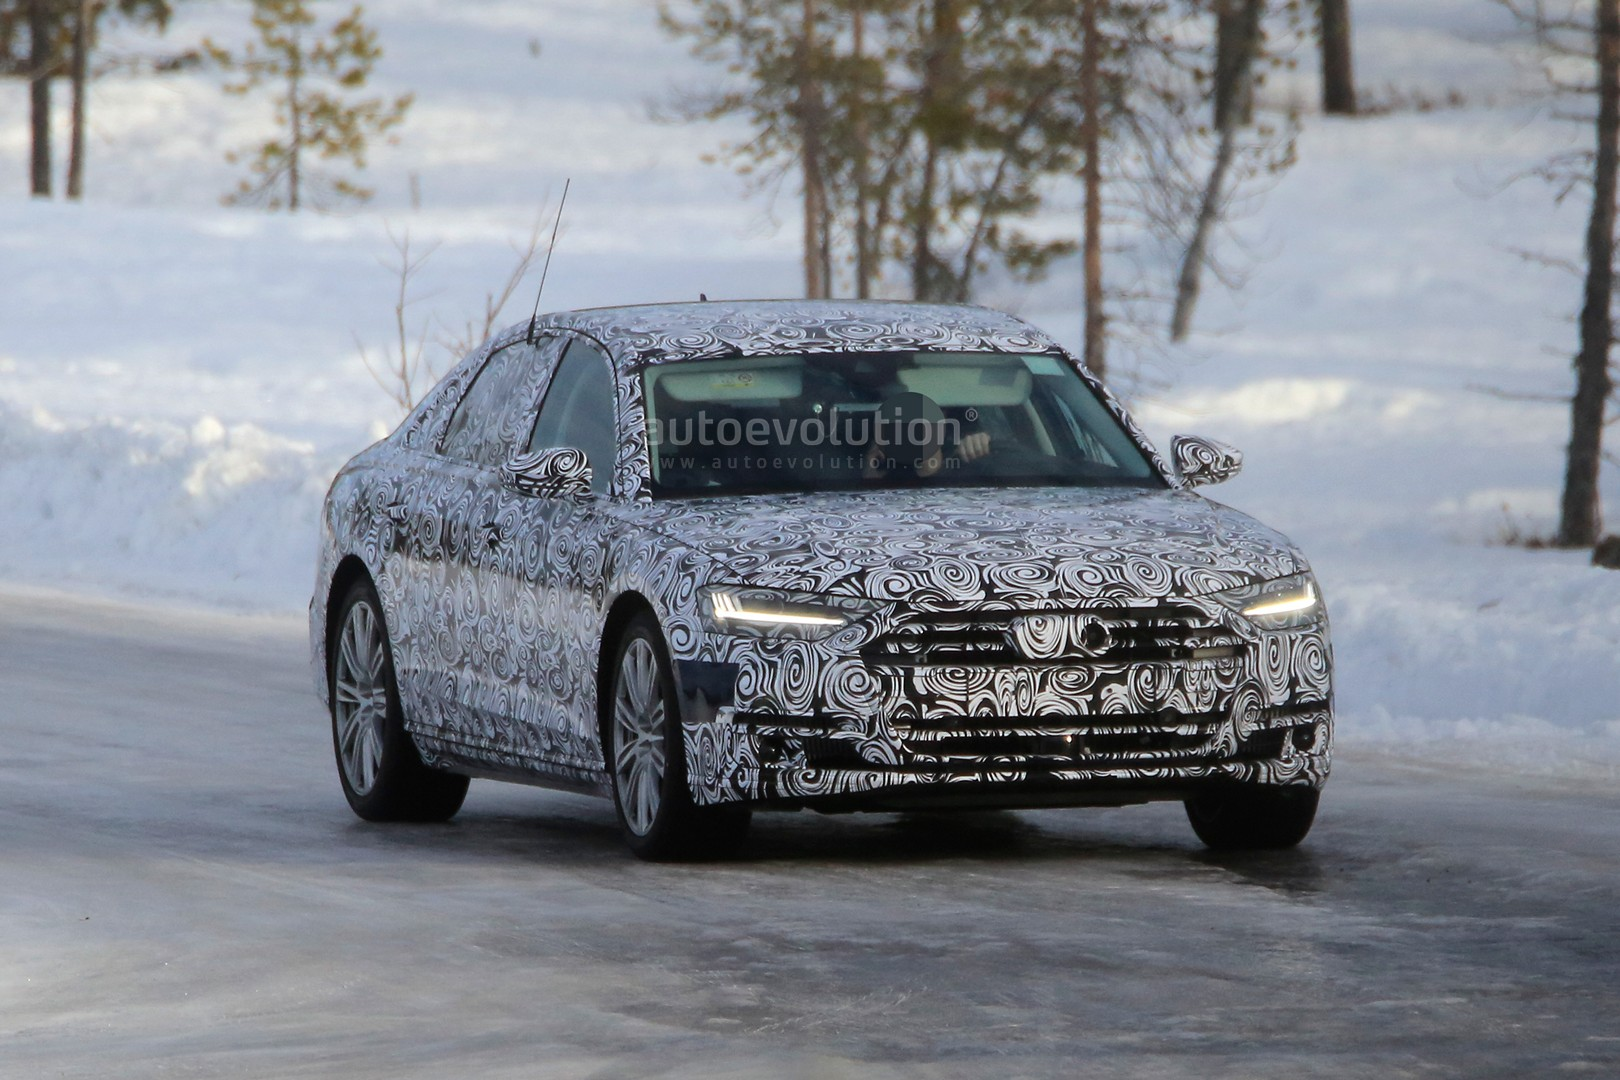 2018 Audi A8 and S8 Show New Design Details in Winter ...